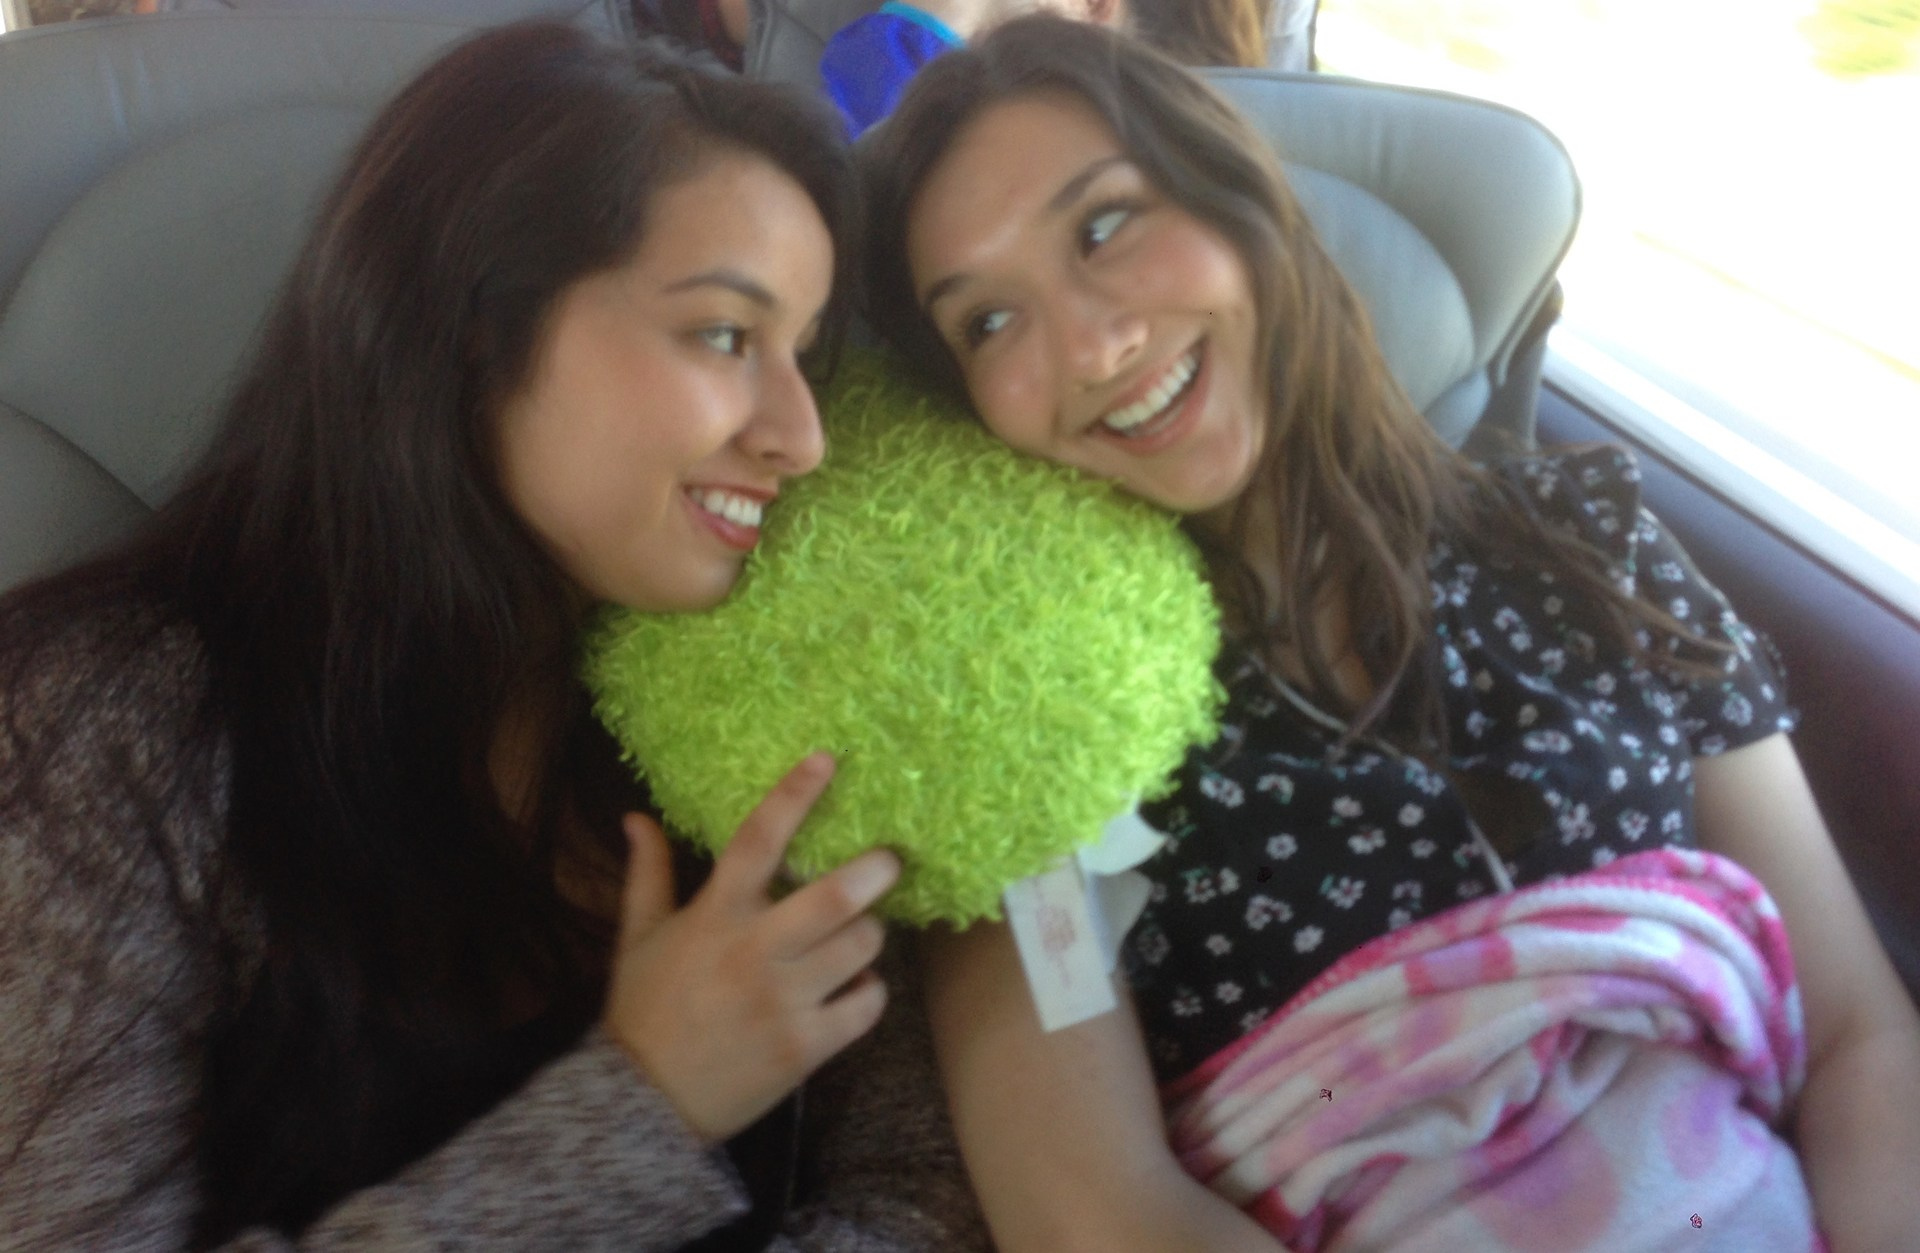 Two Great Books students on the bullet train from London to Paris